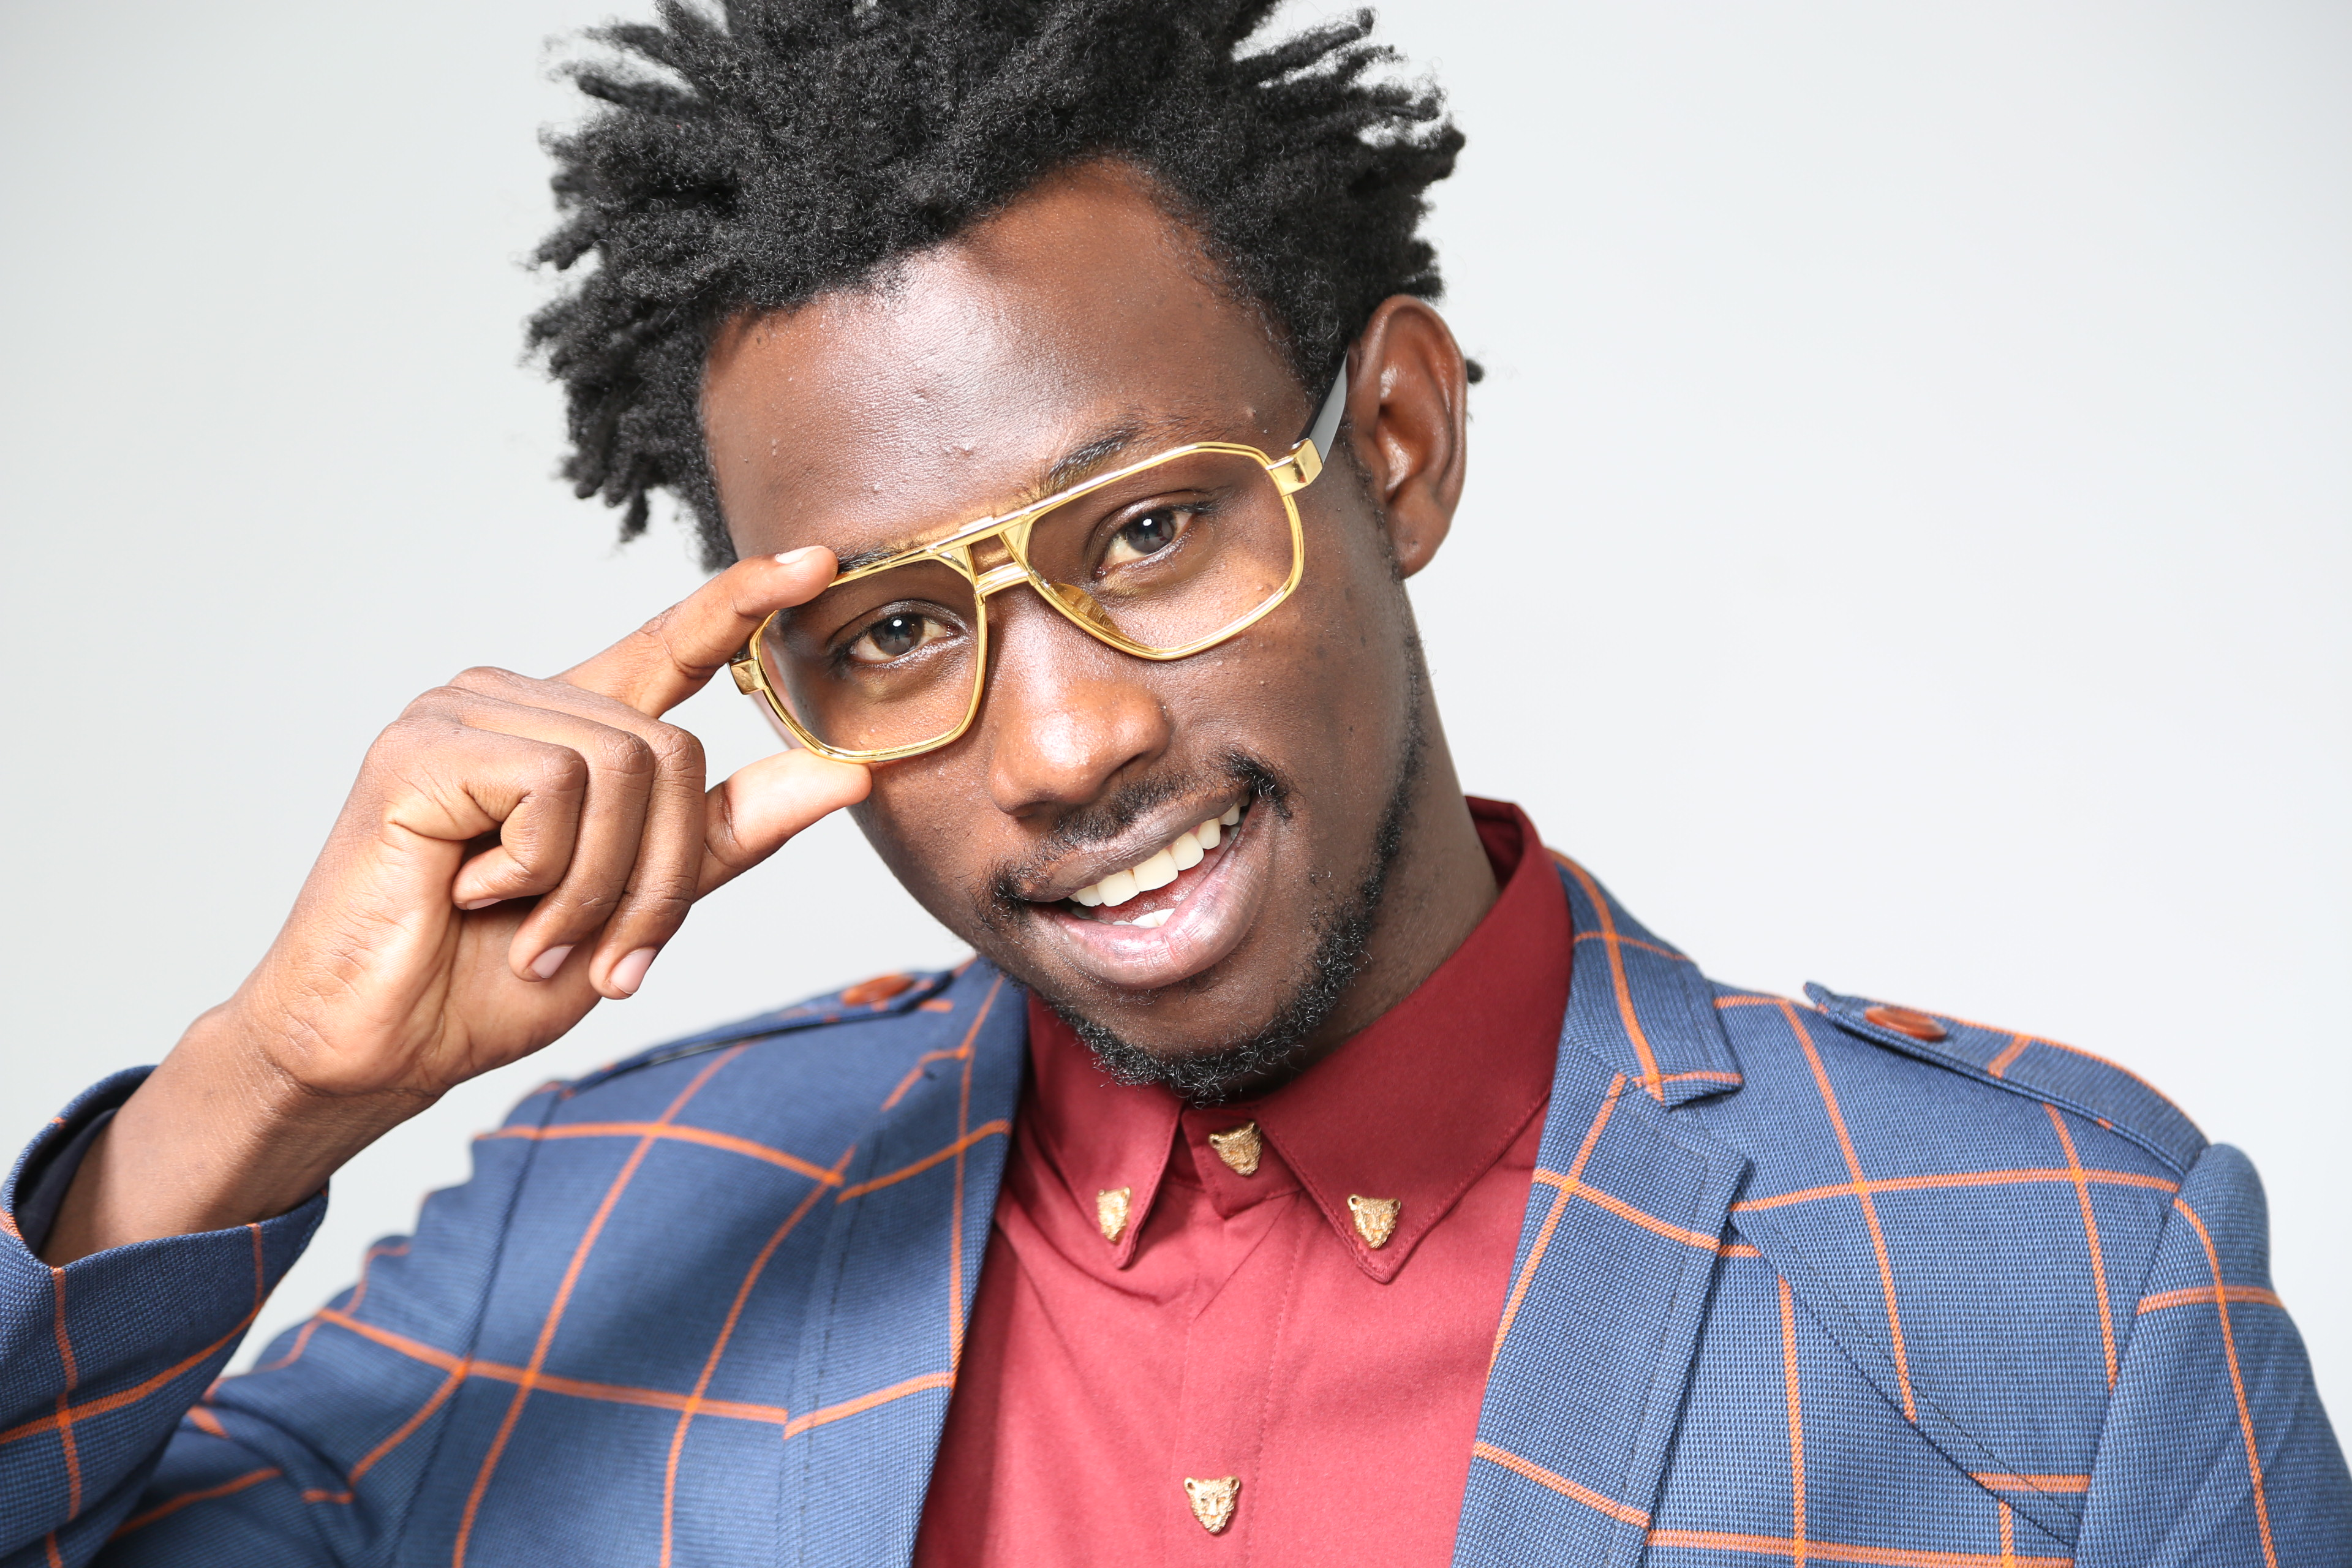 Levixone is currently a single man